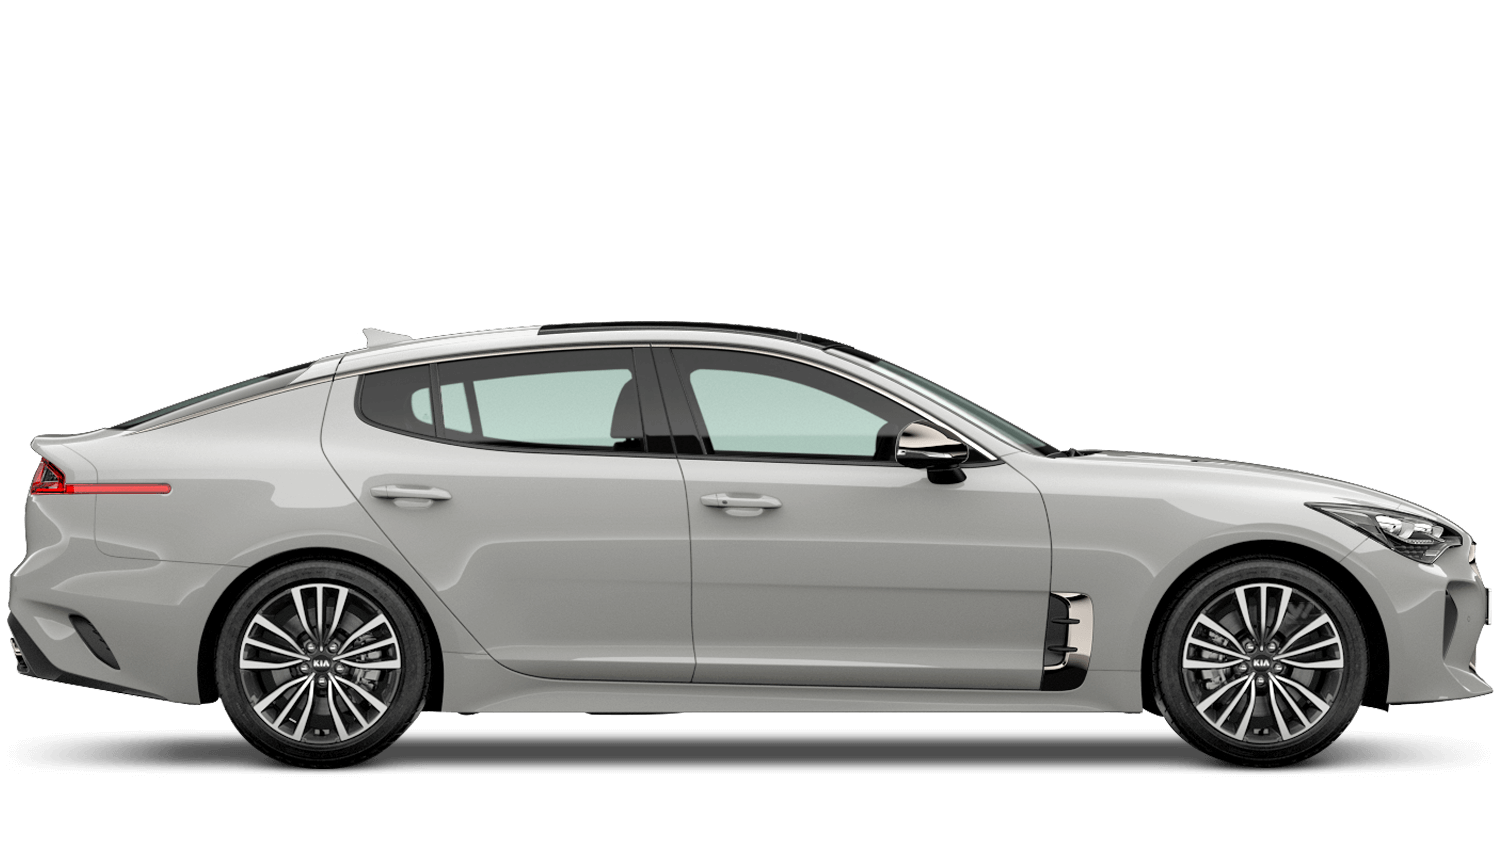 Ceramic Grey (Premium) Kia Stinger